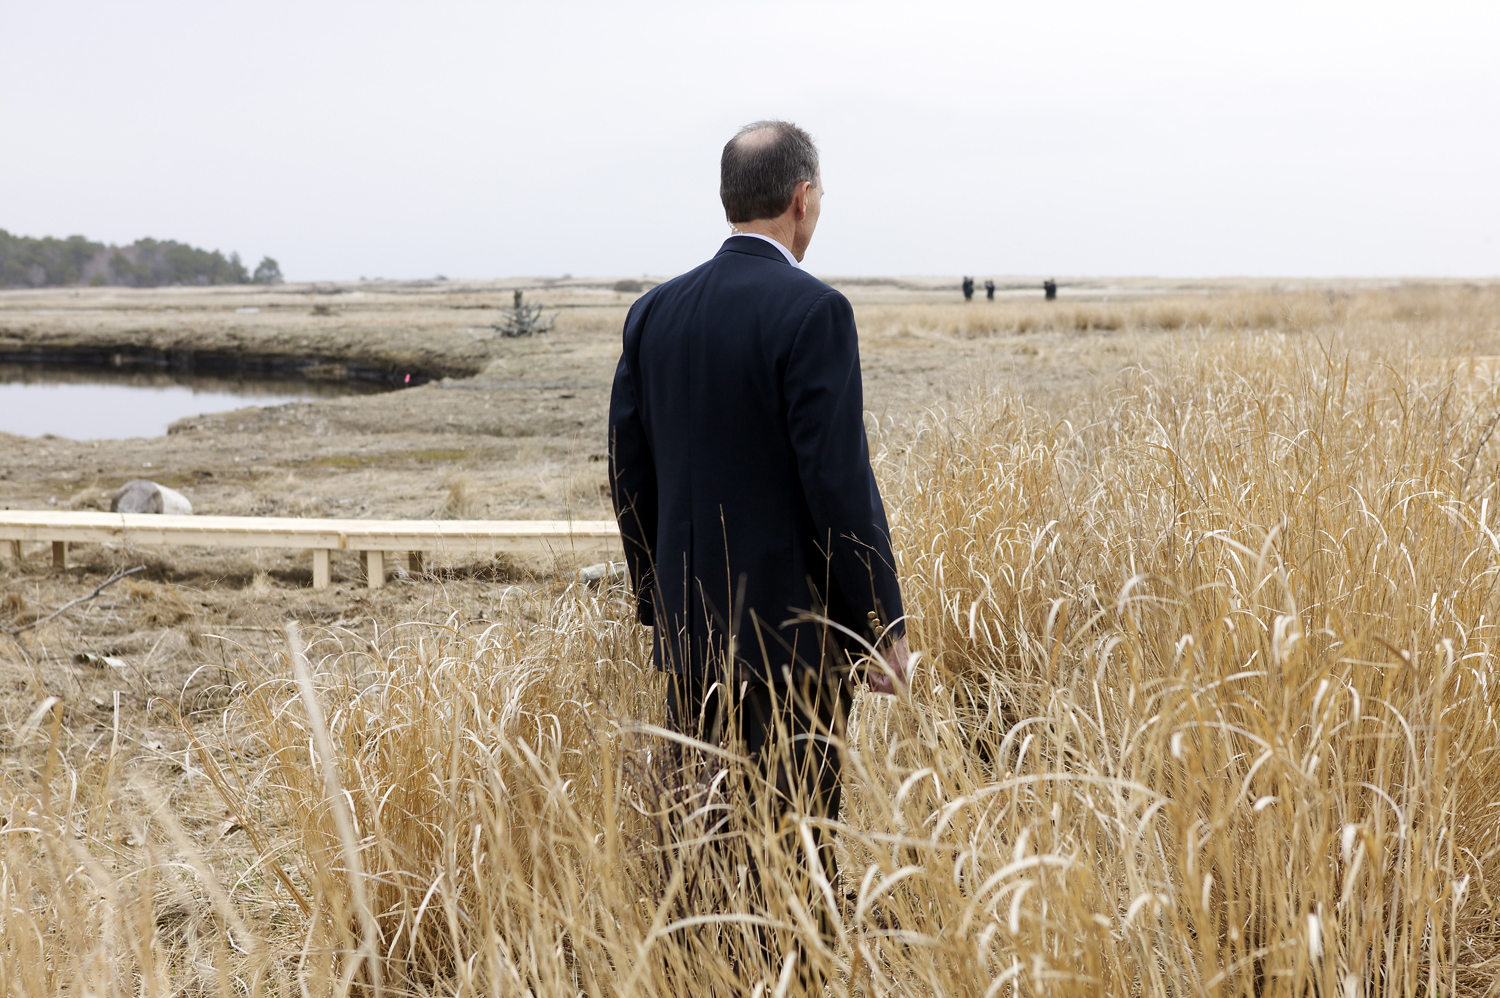 April 22, 2004. A Secret Service agent stands guard during President George W. Bush's visit to the Wells National Estuarine Research Reserve in Wells, Maine.